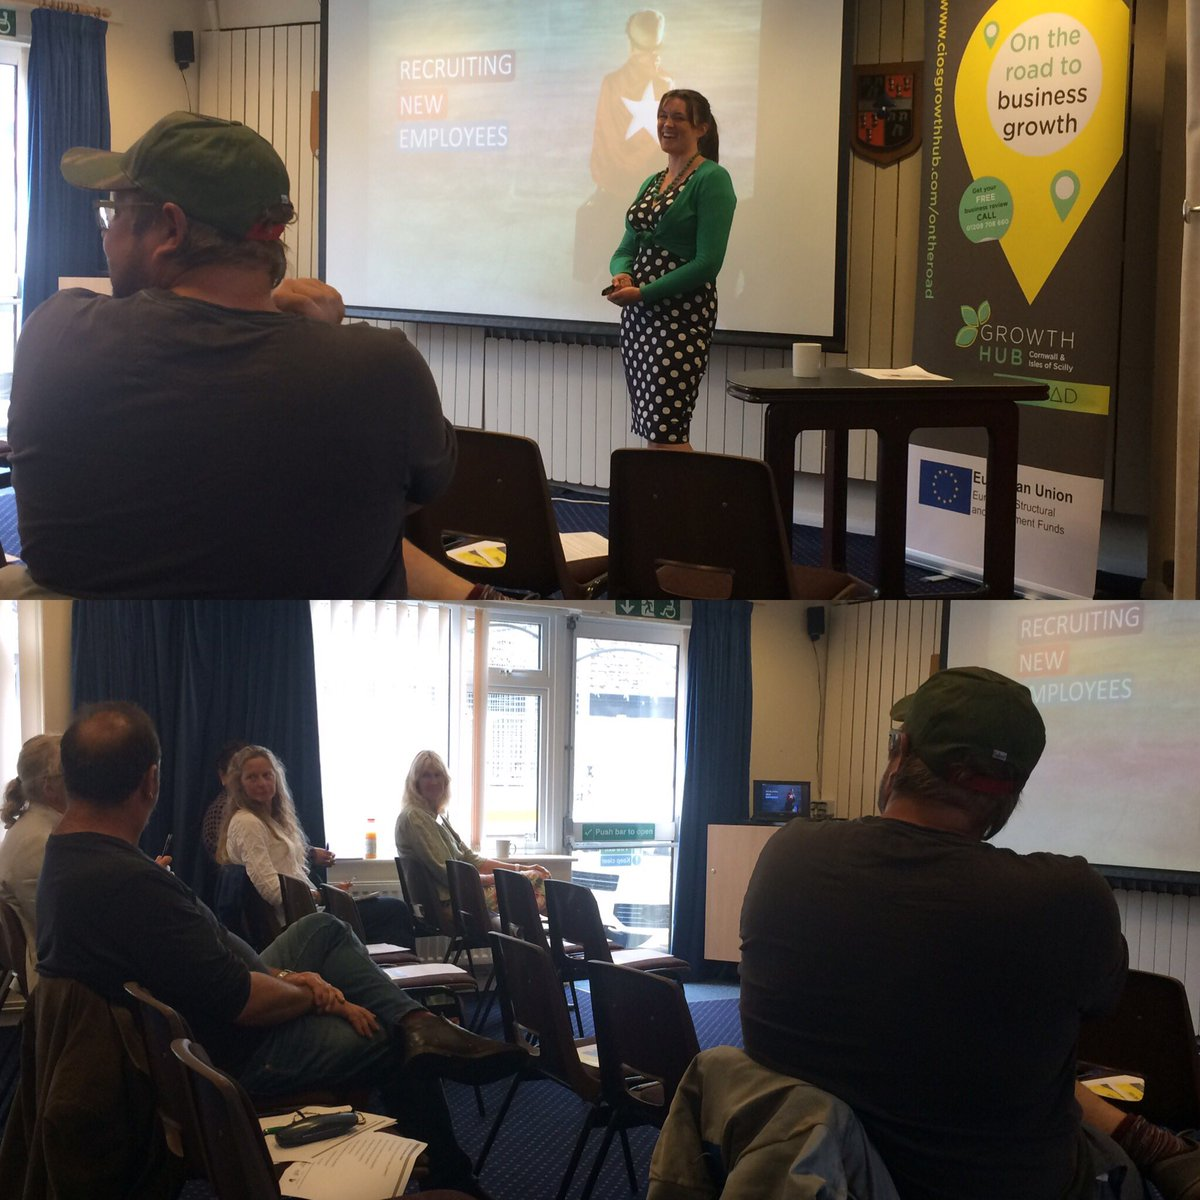 Lucy Cox @UP_Cornwall talking about Recruiting new employees @CallingtonTC #TownTakeover <br>http://pic.twitter.com/7oZsymgJQX